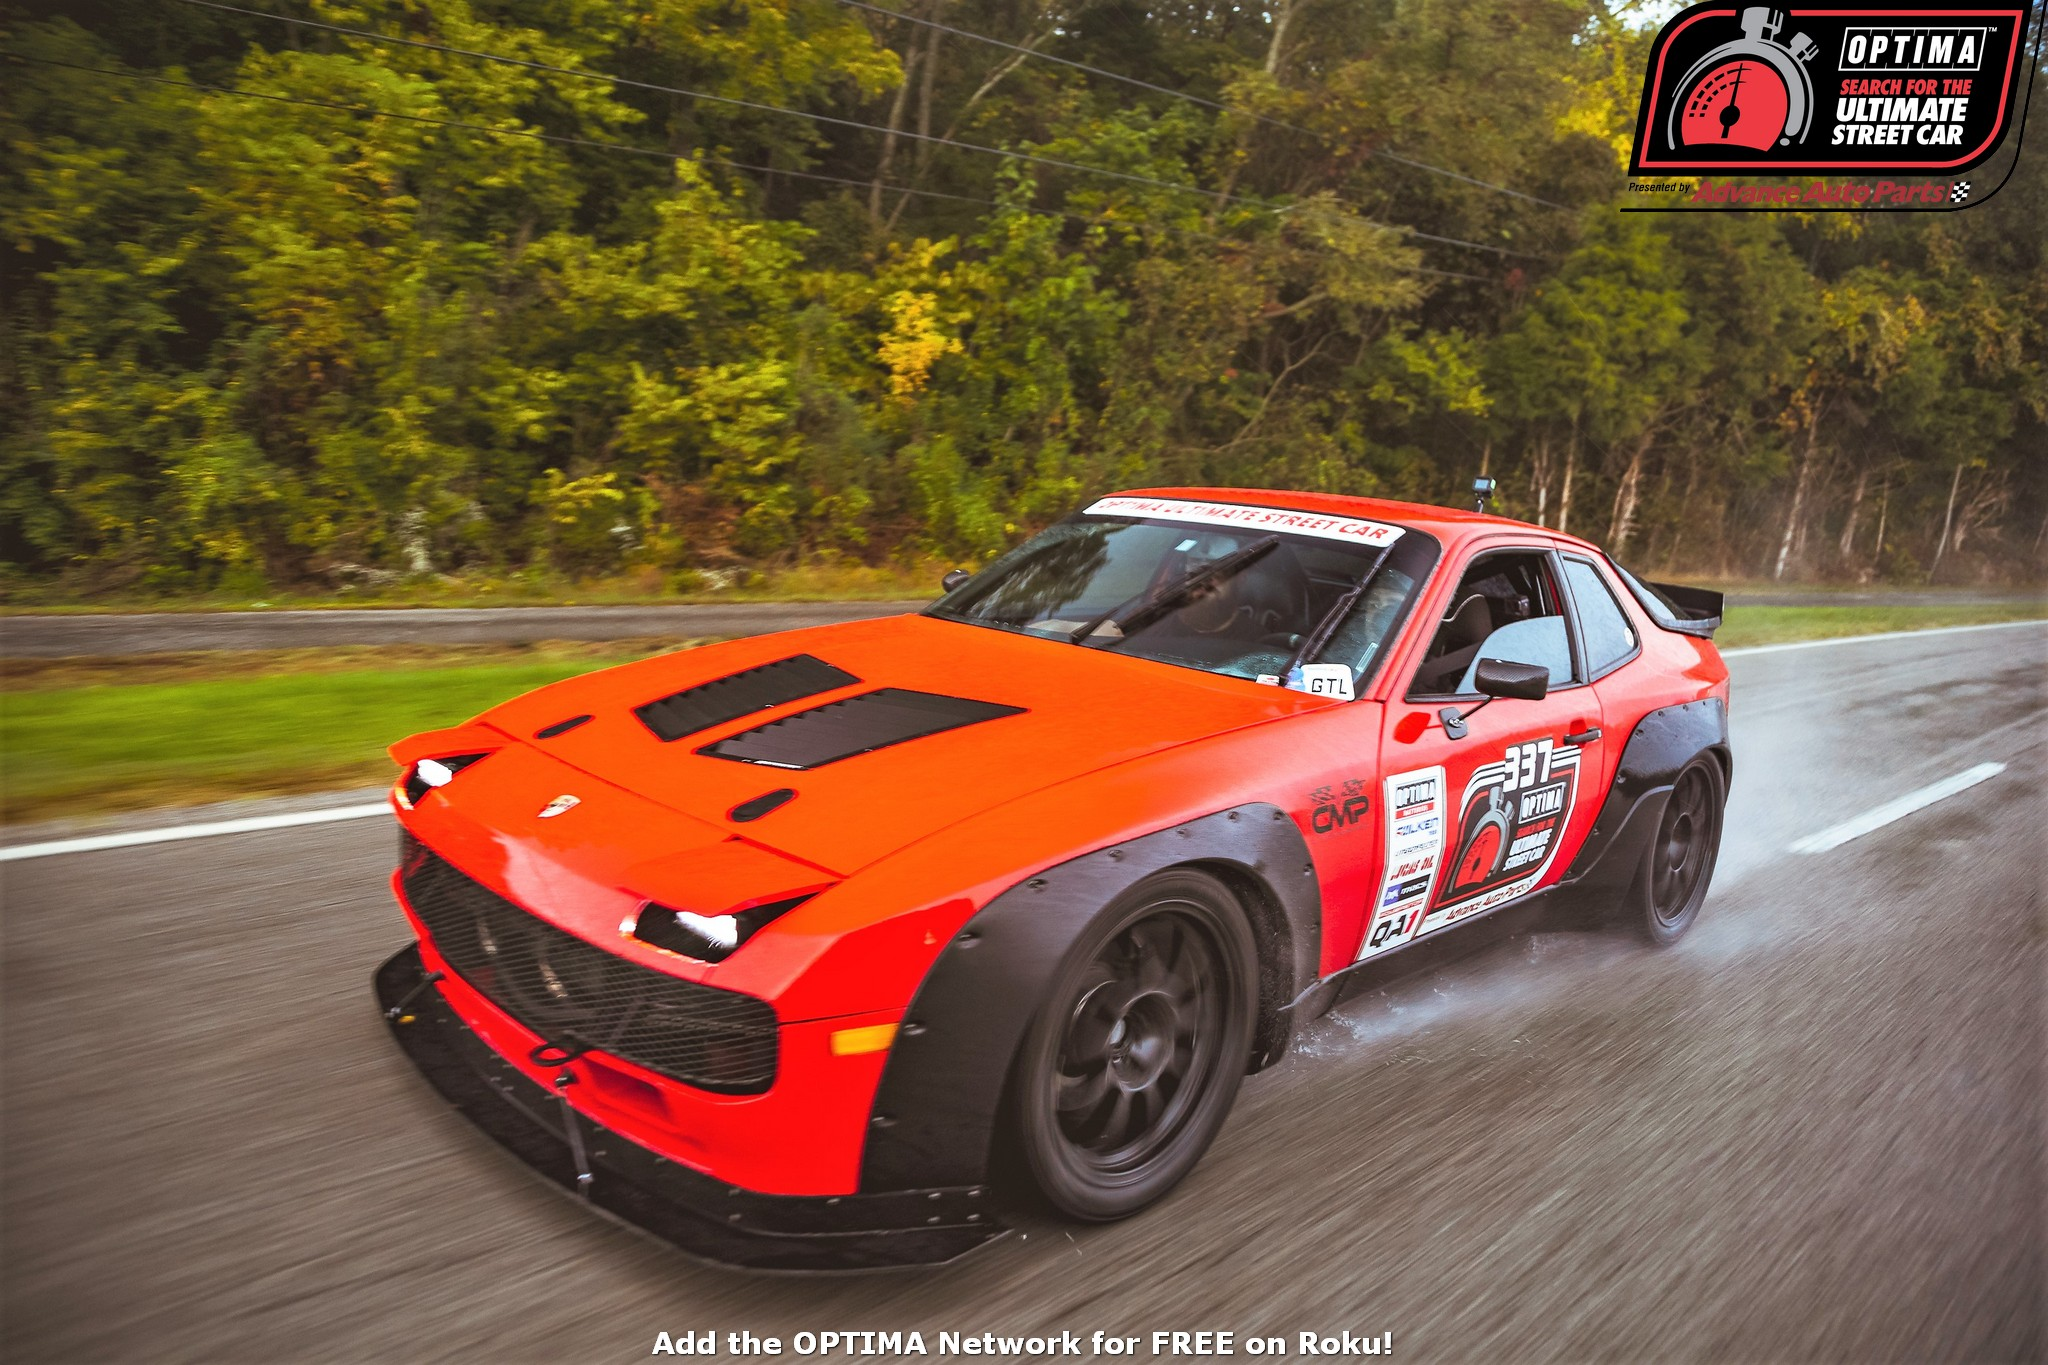 OPTIMA's Wet Search For The Ultimate Street Car: Real Street Cars Run In The Rain